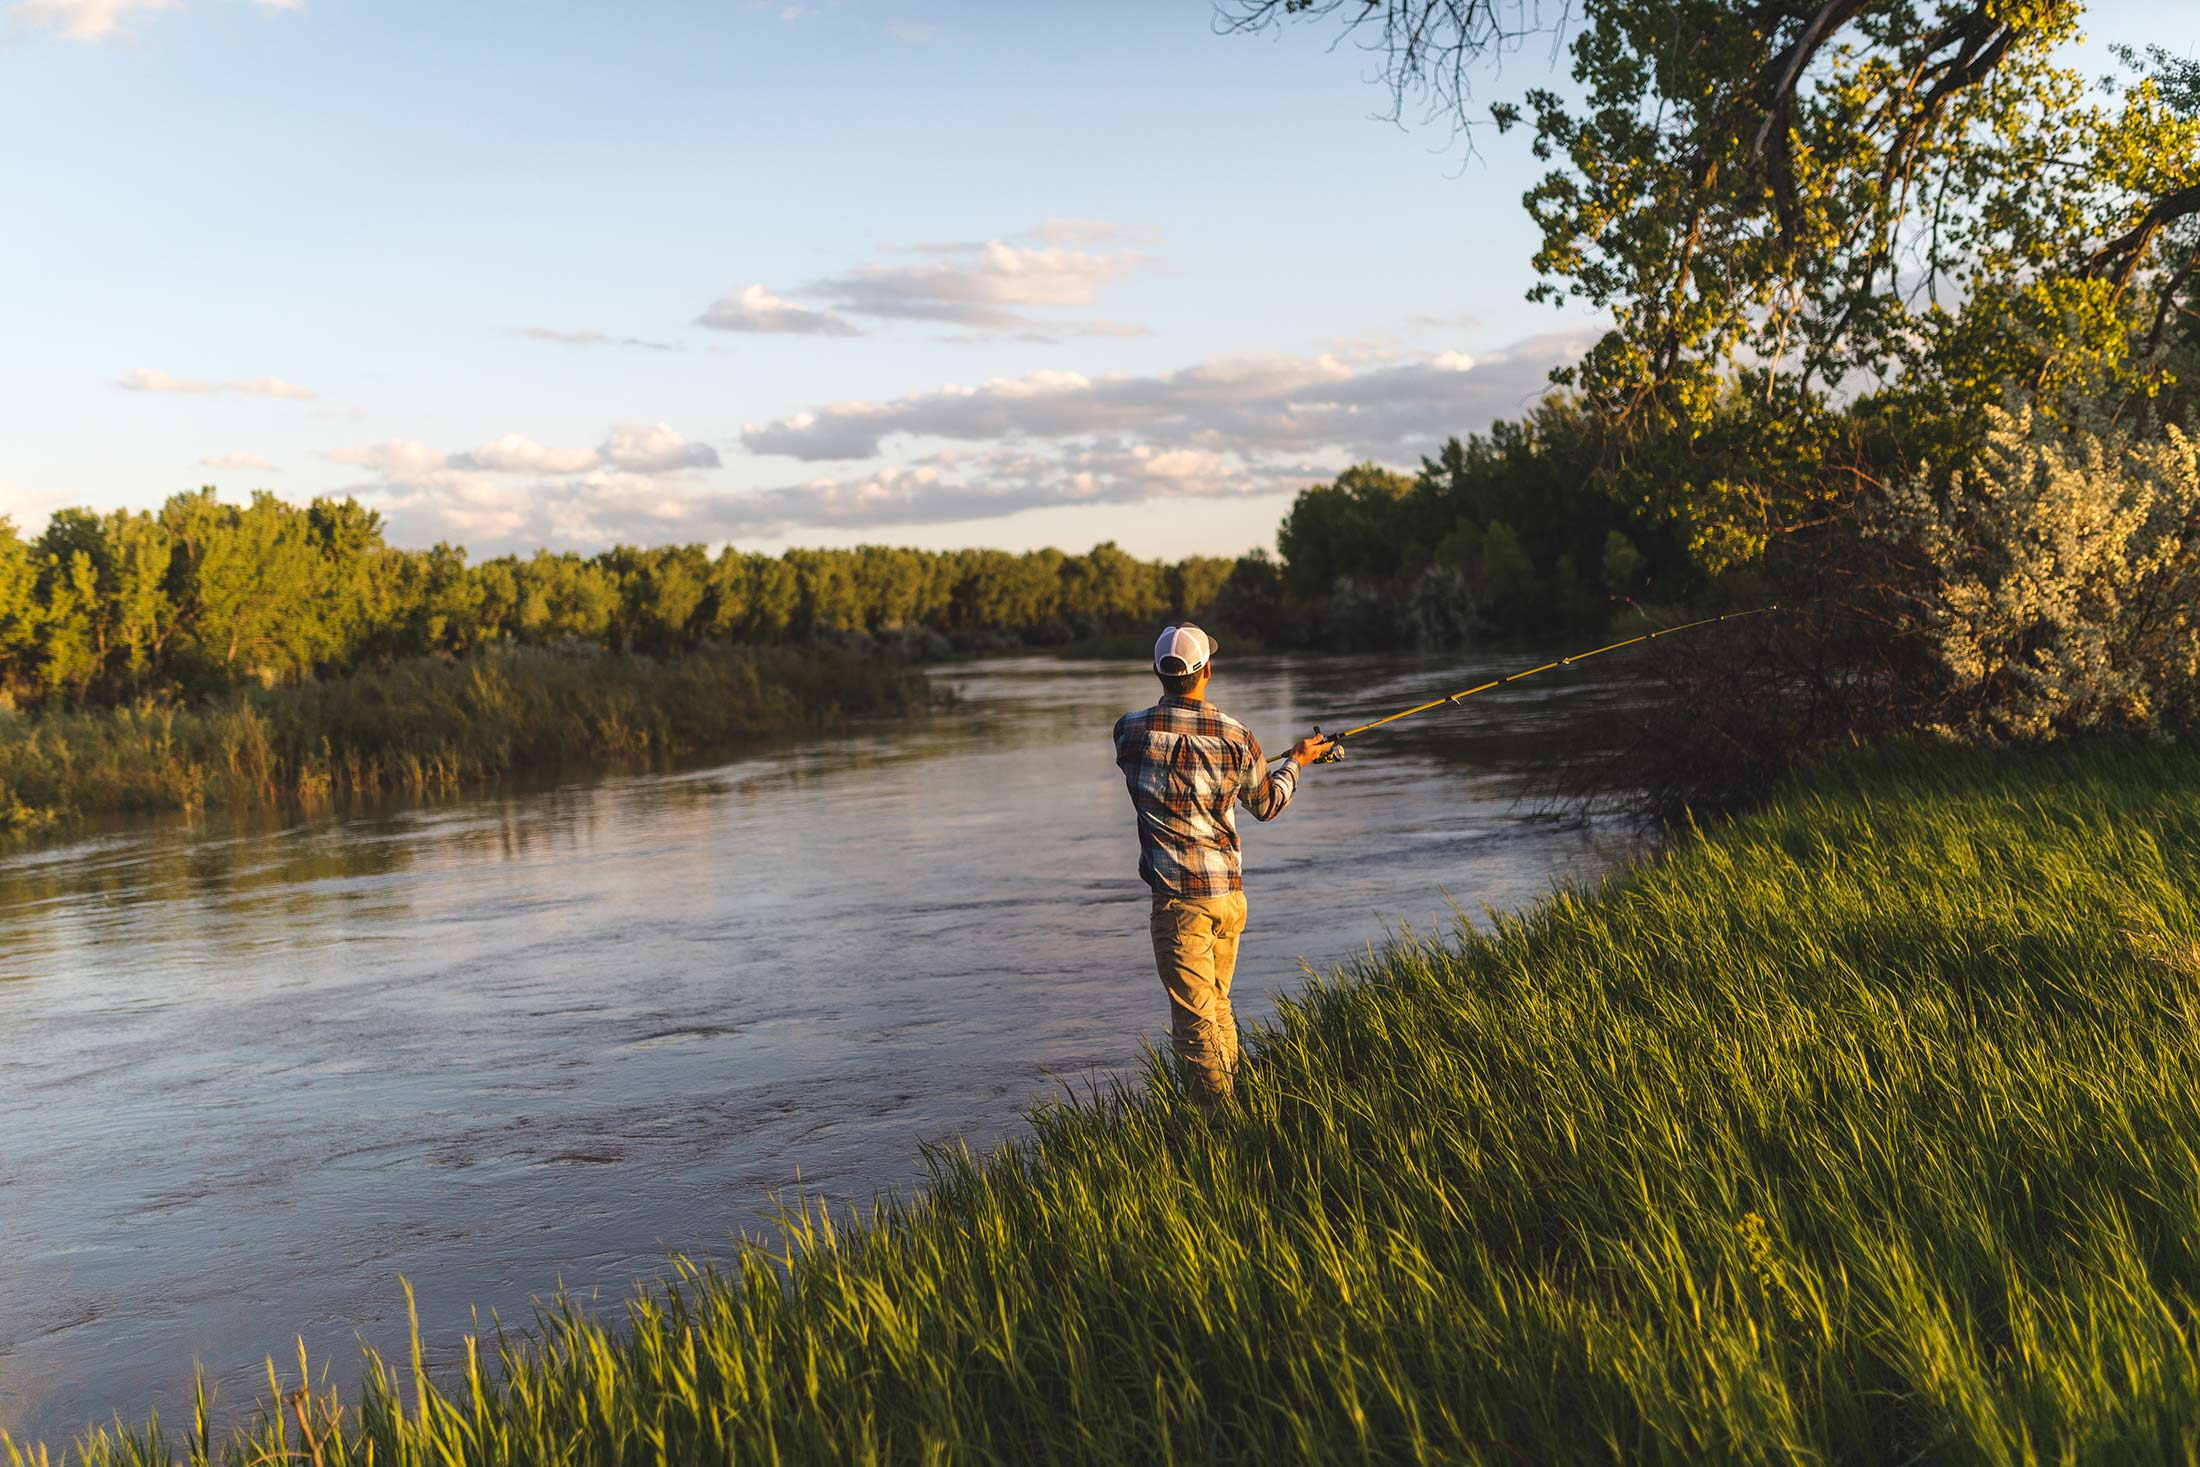 Fishing in Montana's Missouri River Country